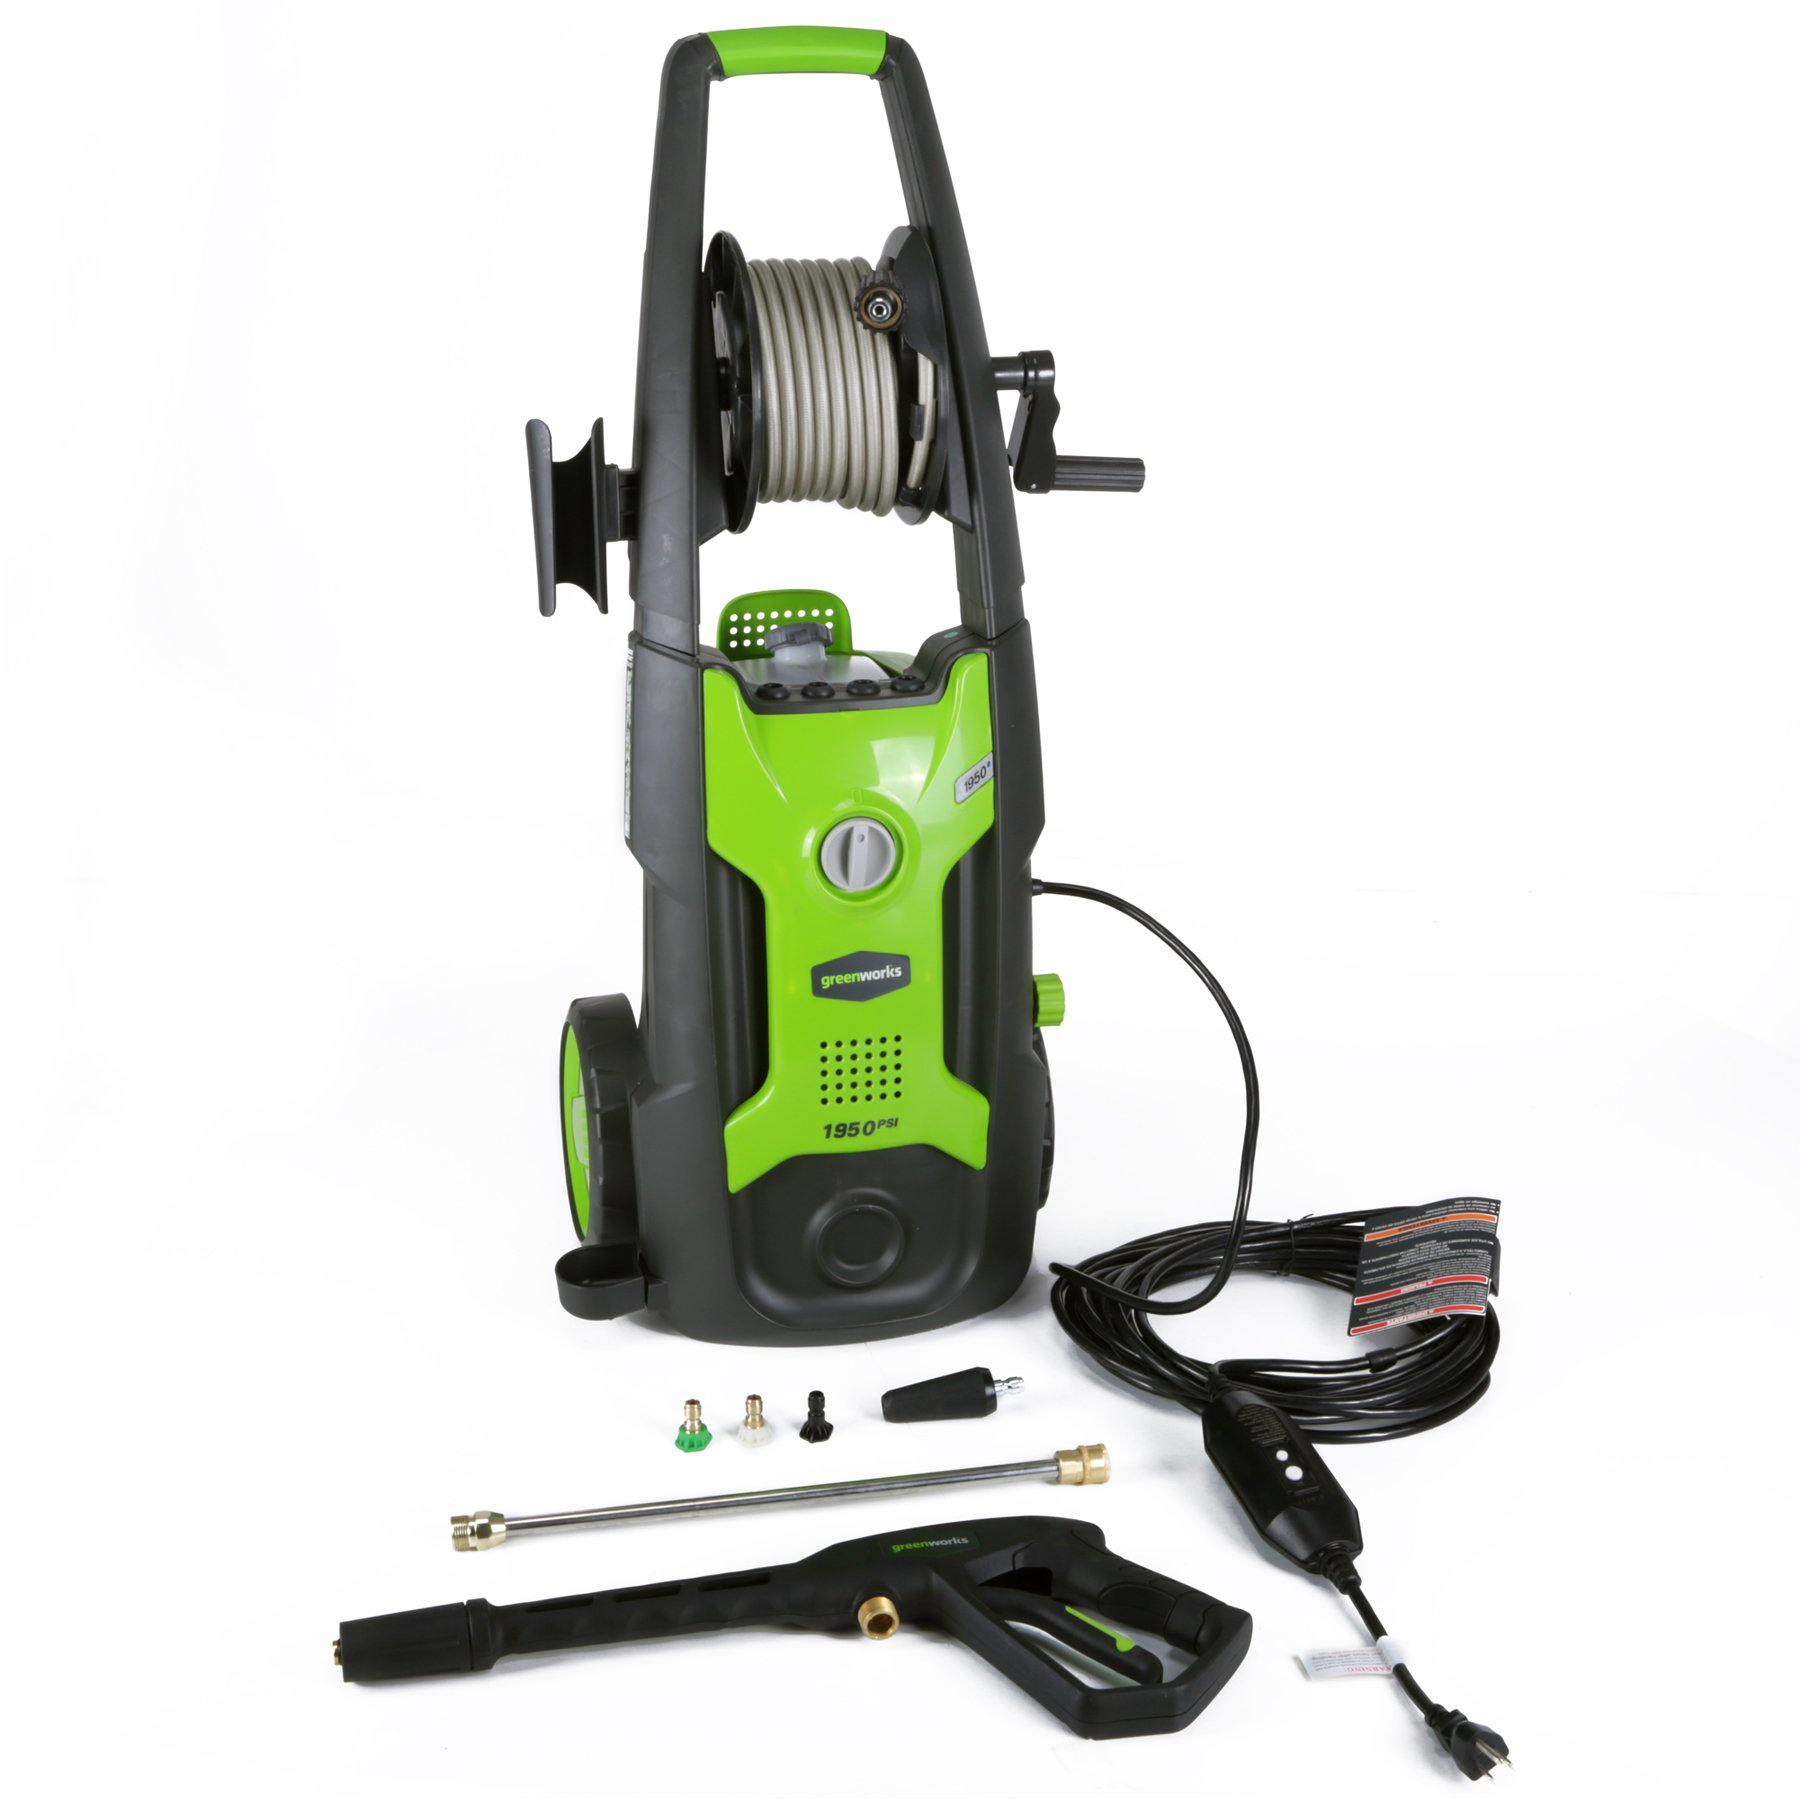 Greenworks 1950 PSI 13 Amp 1.2 GPM Pressure Washer with Hose Reel GPW1951